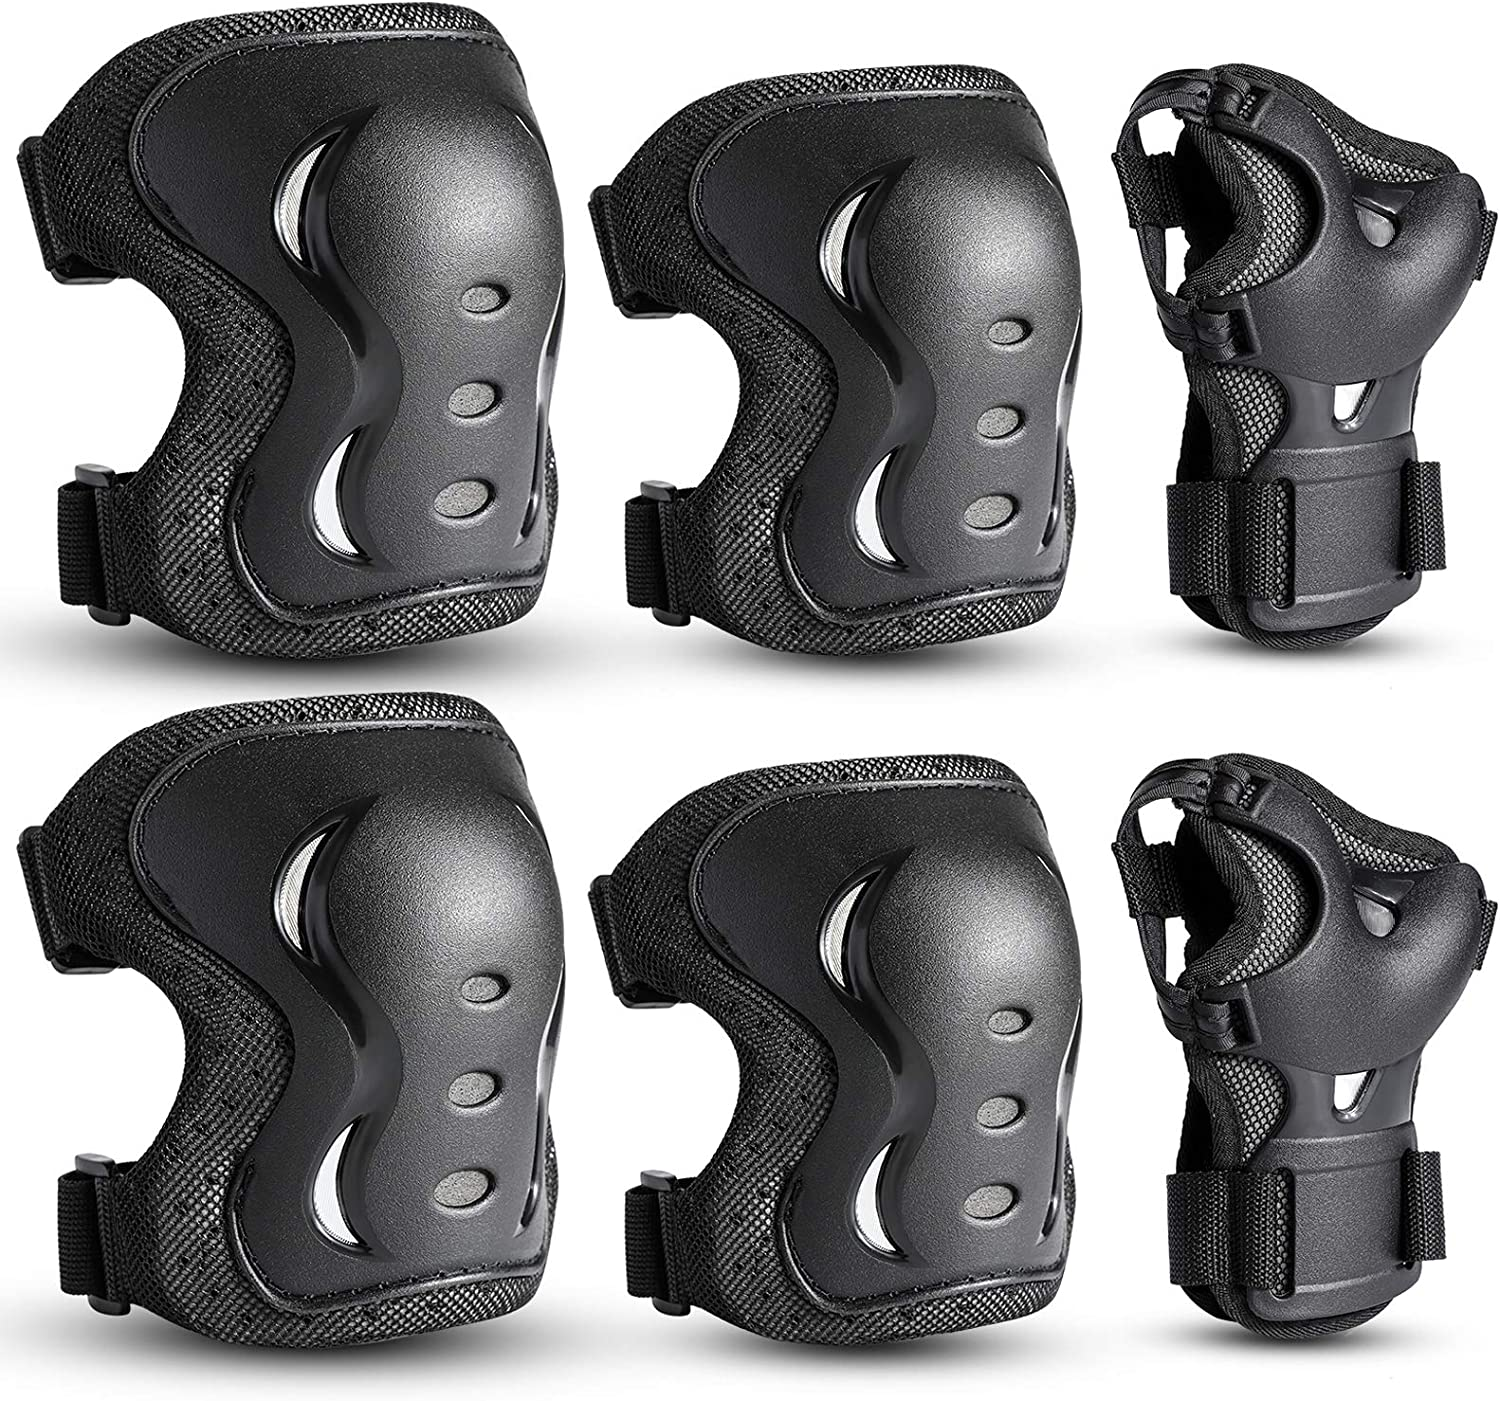 OMID Knee Pads and Elbow Pads with Wrist Guards Protective Gear Set for Adult /& Child Biking Snowboarding Riding Sports Protective Gear Safeguard Support Pad for Multi Sports Skateboarding